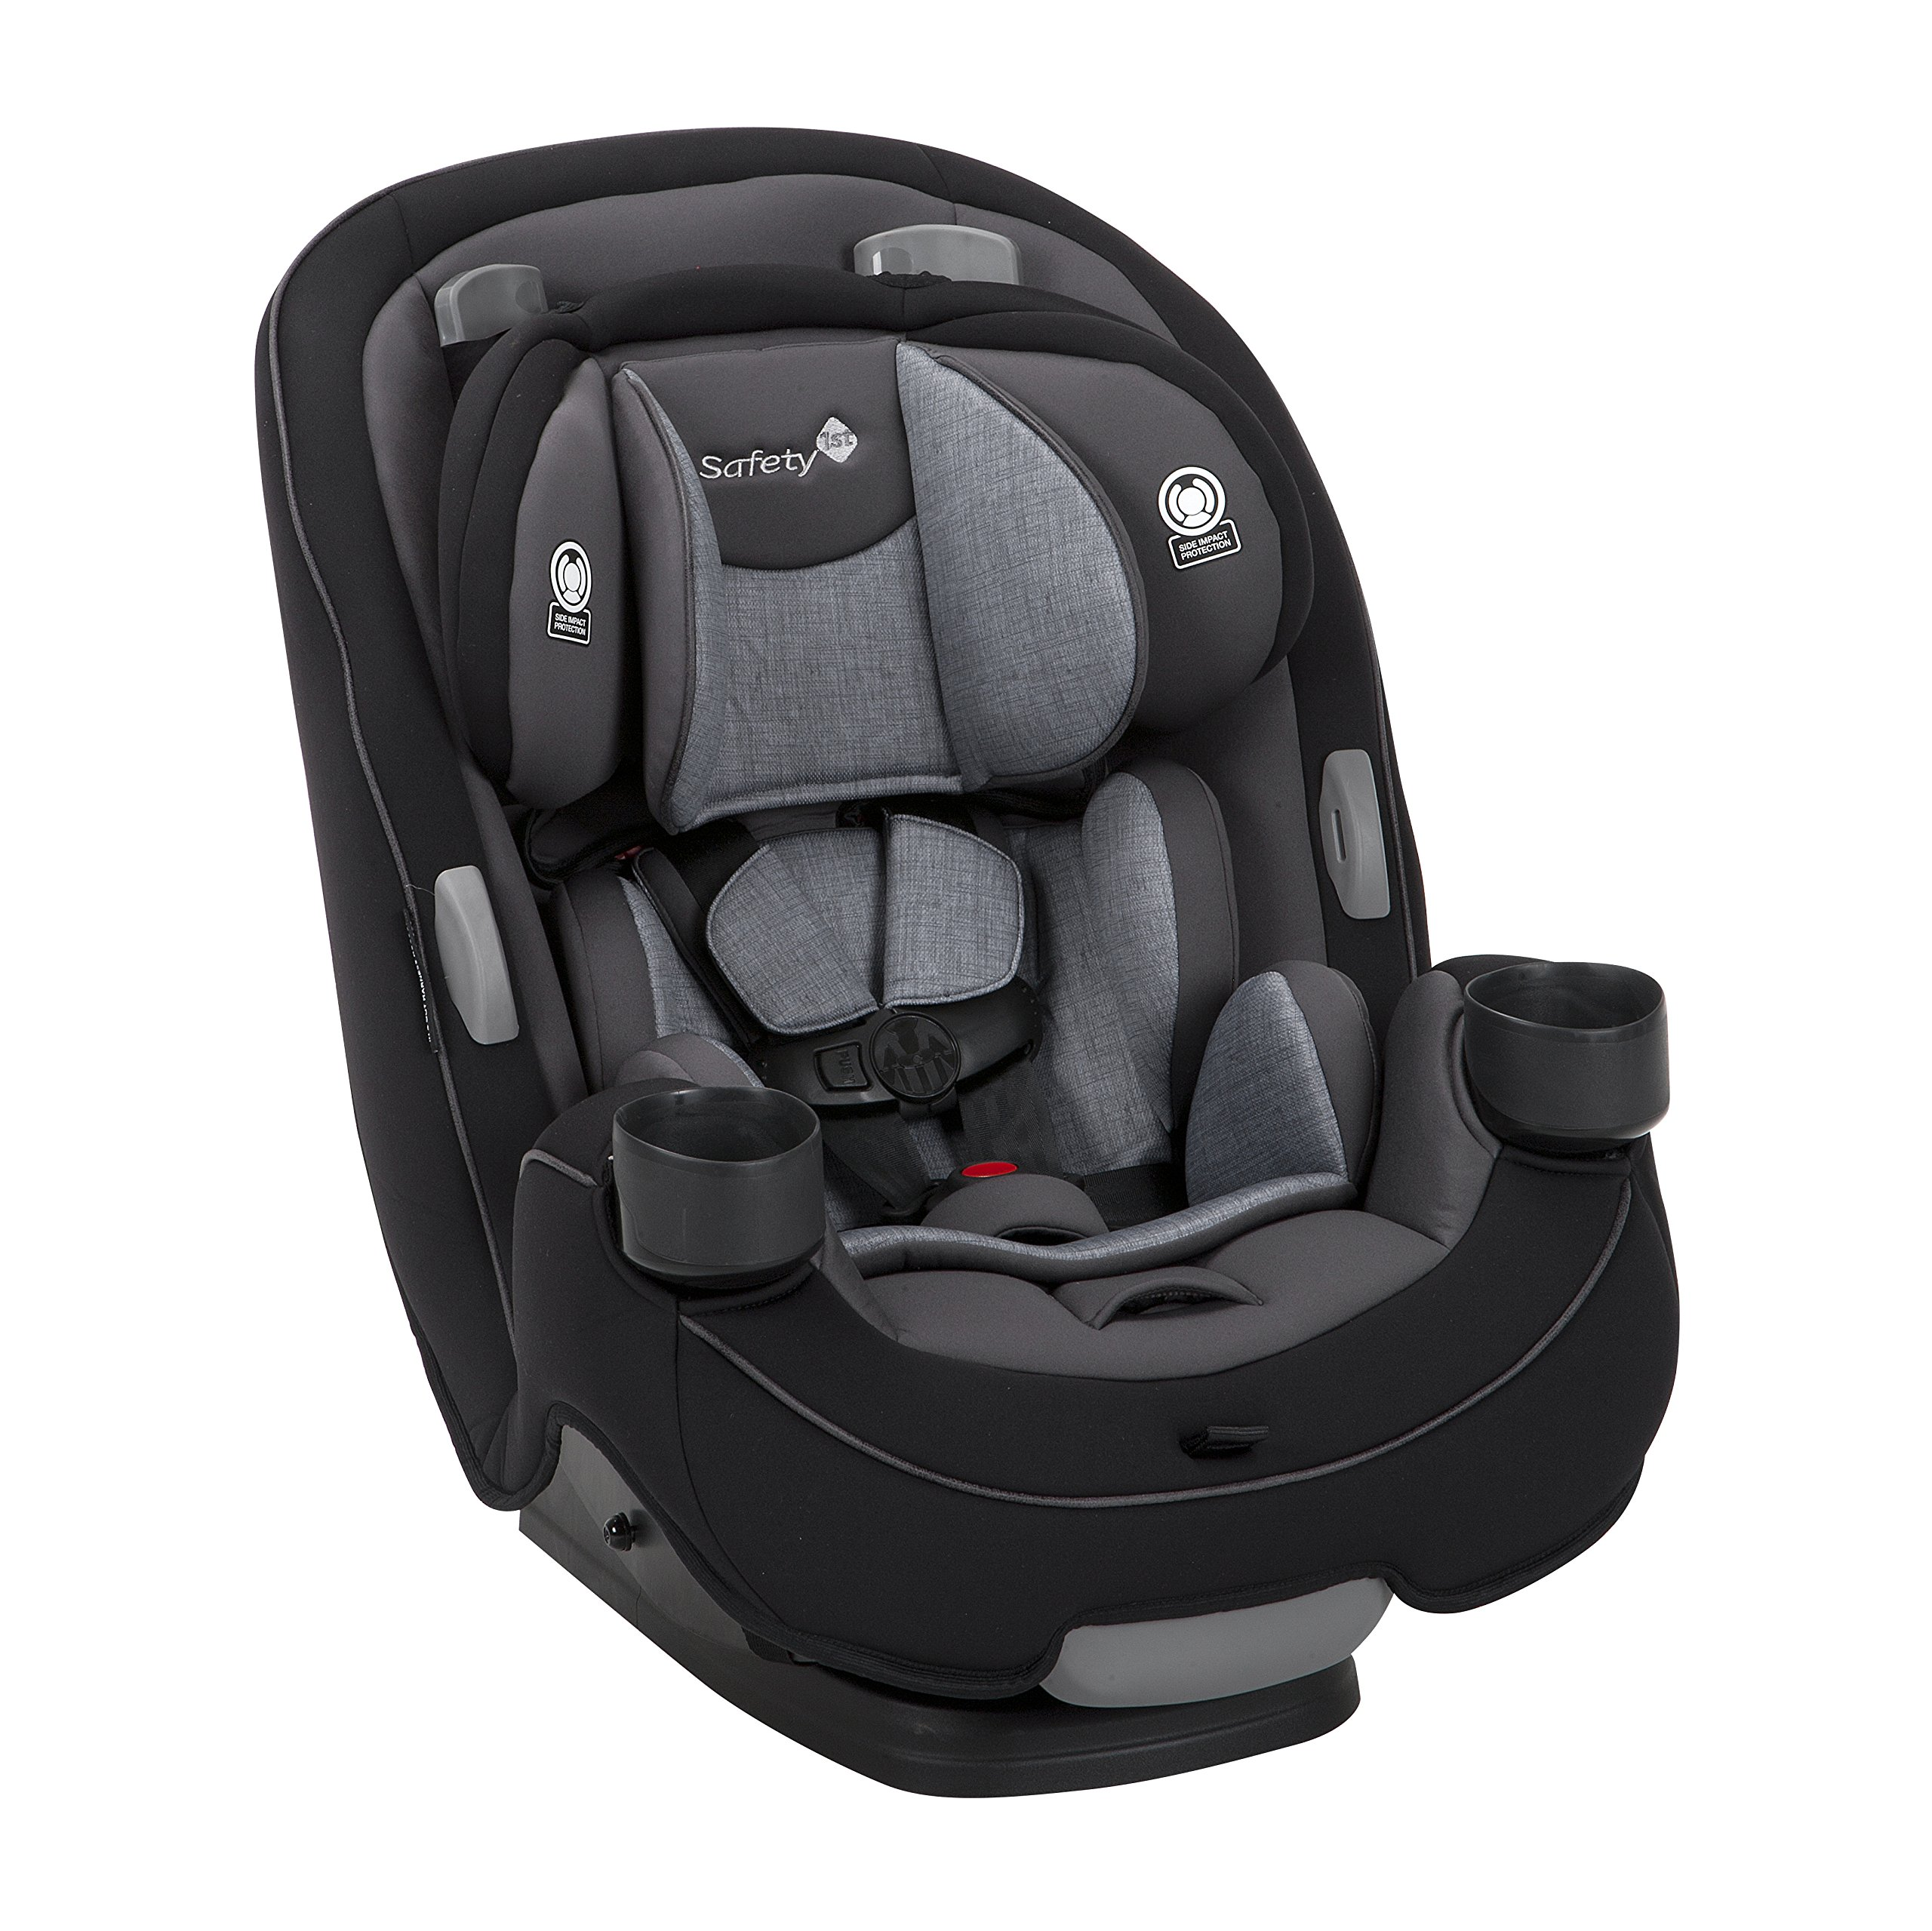 Safety 1st Grow and Go 3-in-1 Convertible Car Seat, Harvest Moon by Safety 1st (Image #10)